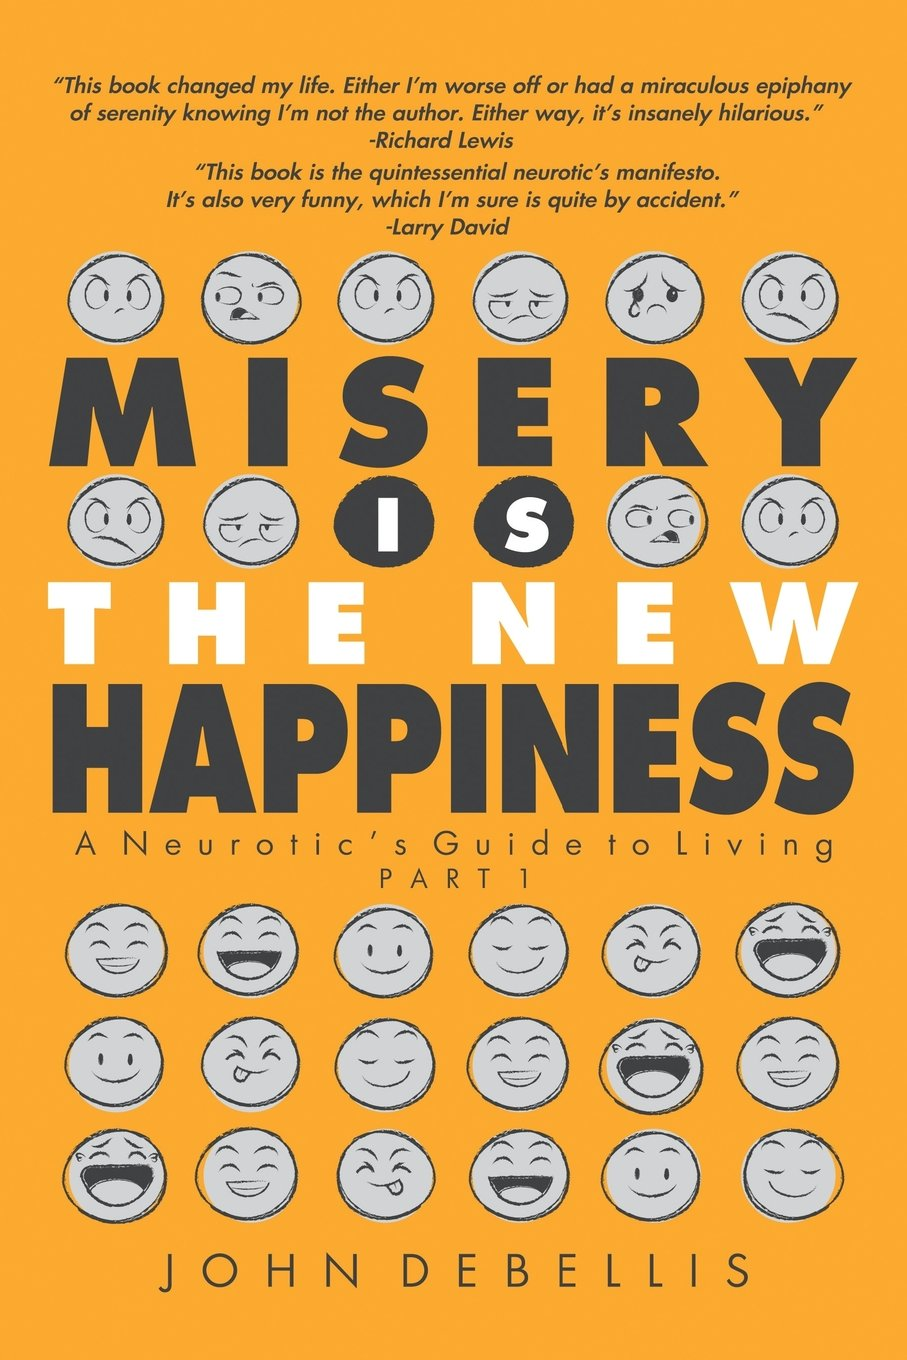 Misery Is the New Happiness: The Neurotic's Guide to Living - Book 1  Paperback – May 15, 2018